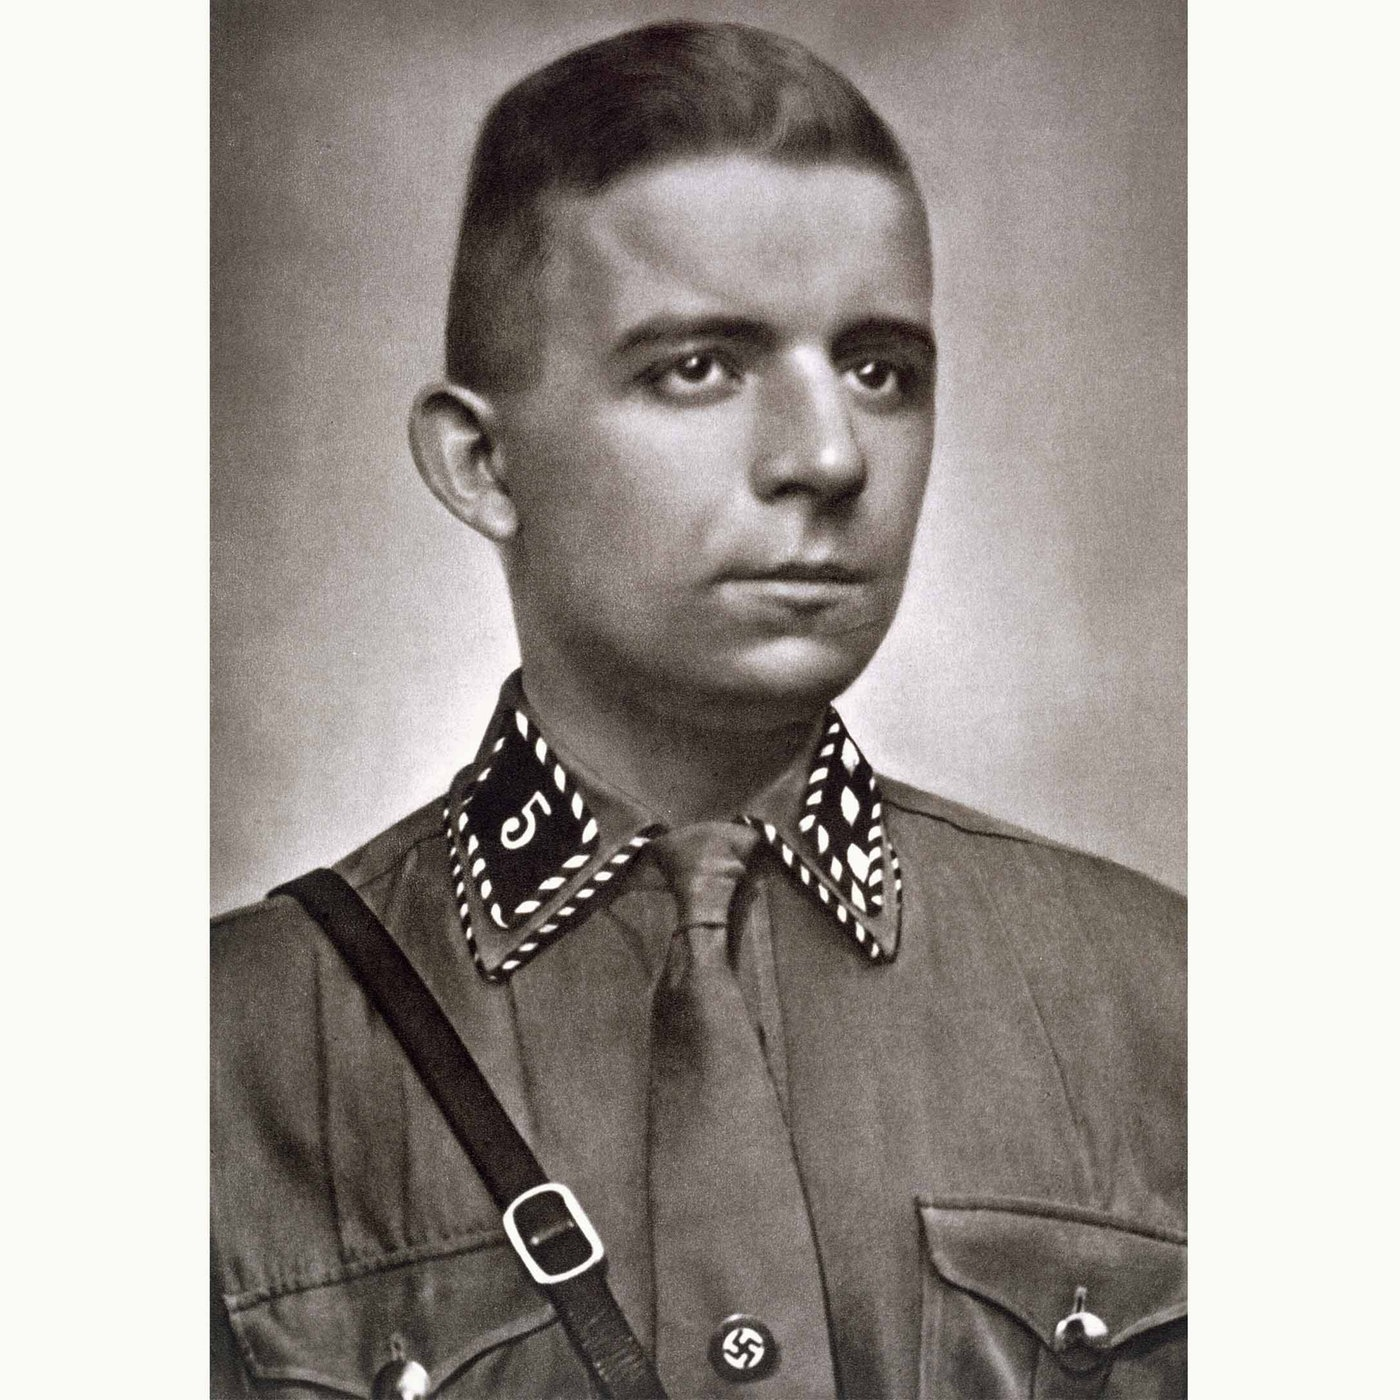 Horst Wessel, Nationalsozialist (Todestag 23.2.1930)